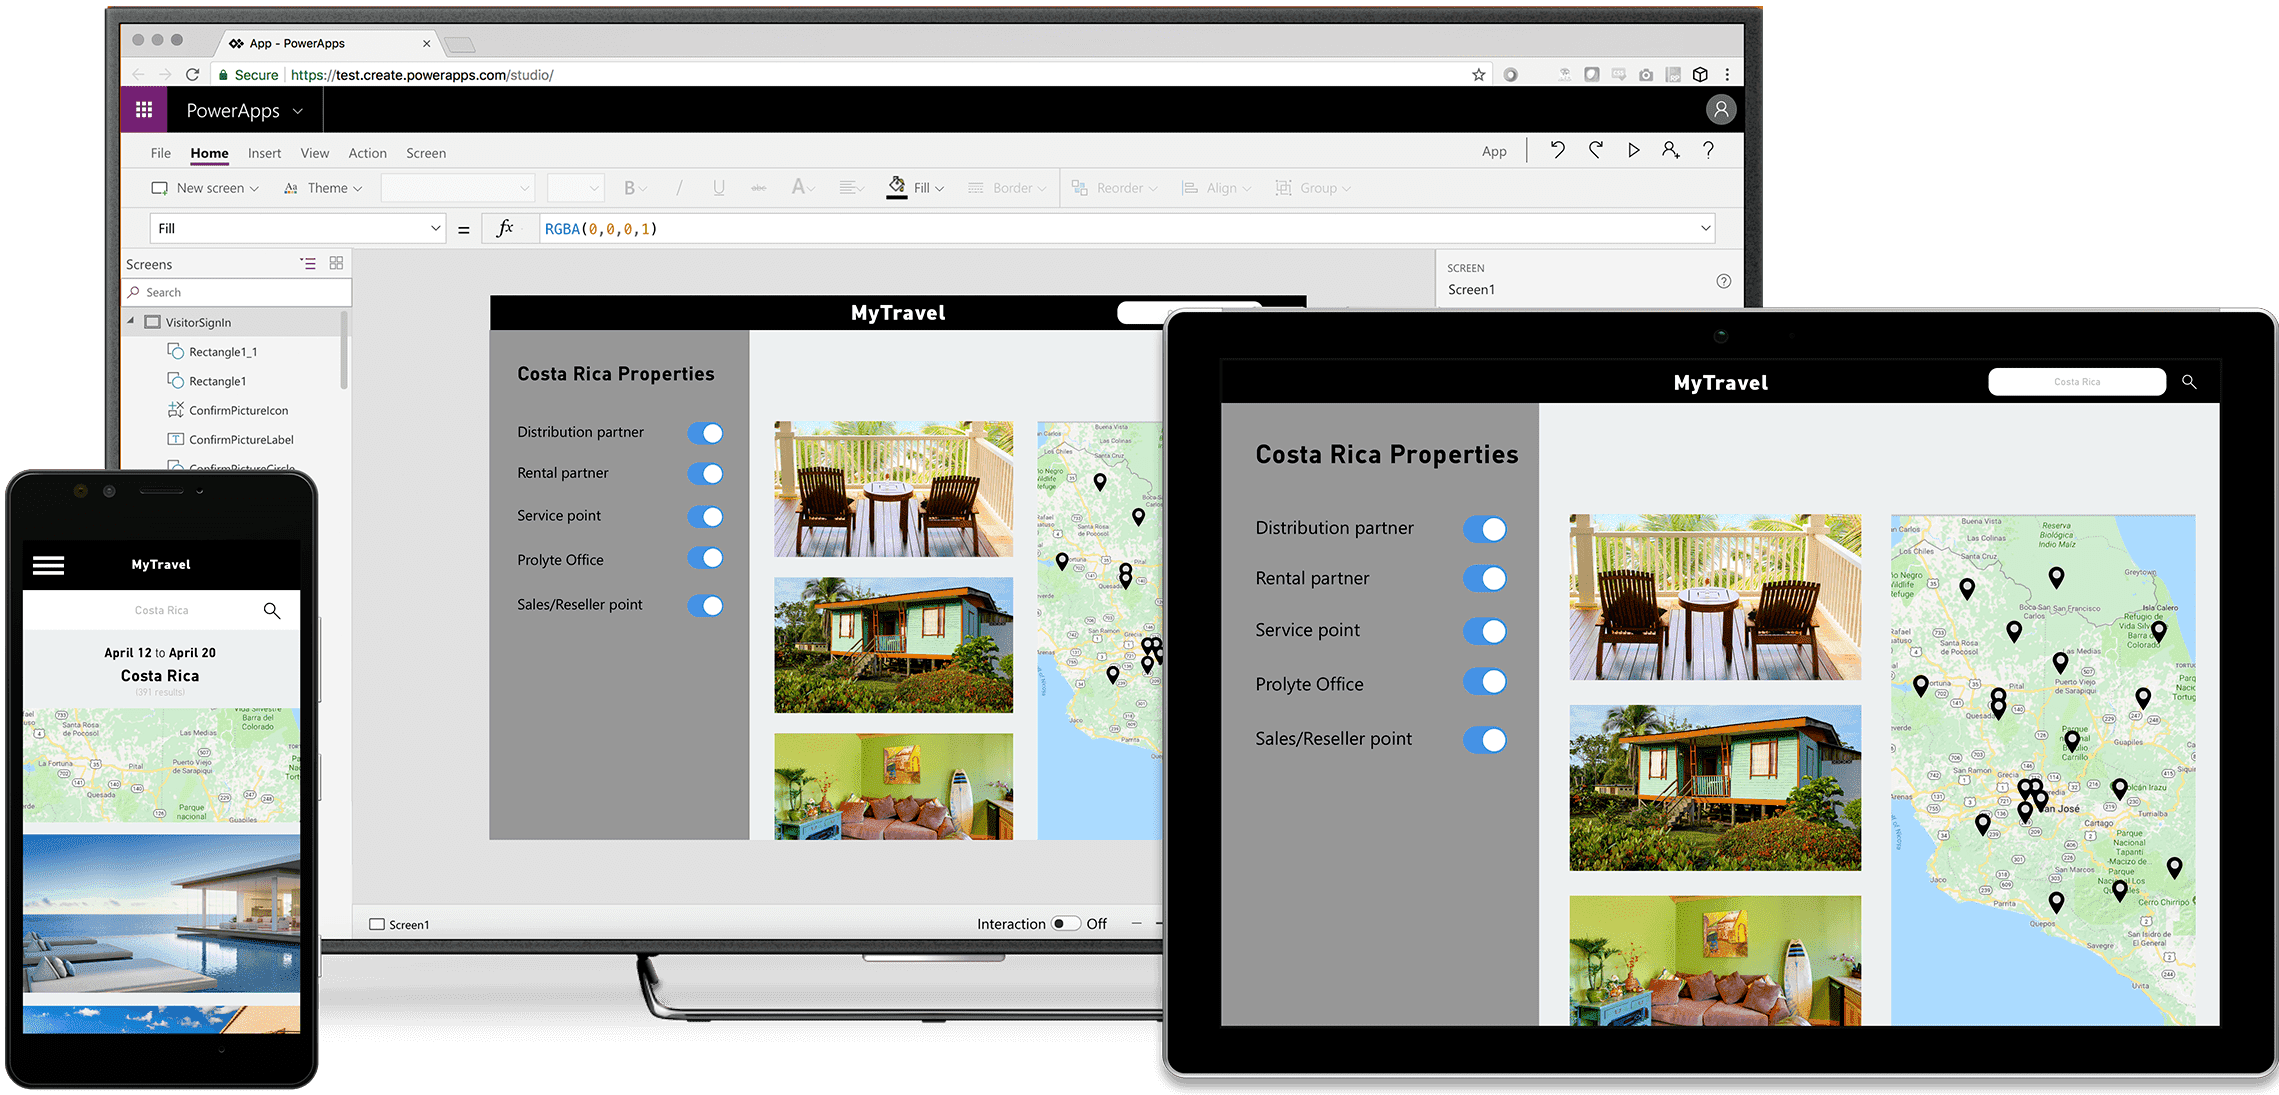 Power Apps image